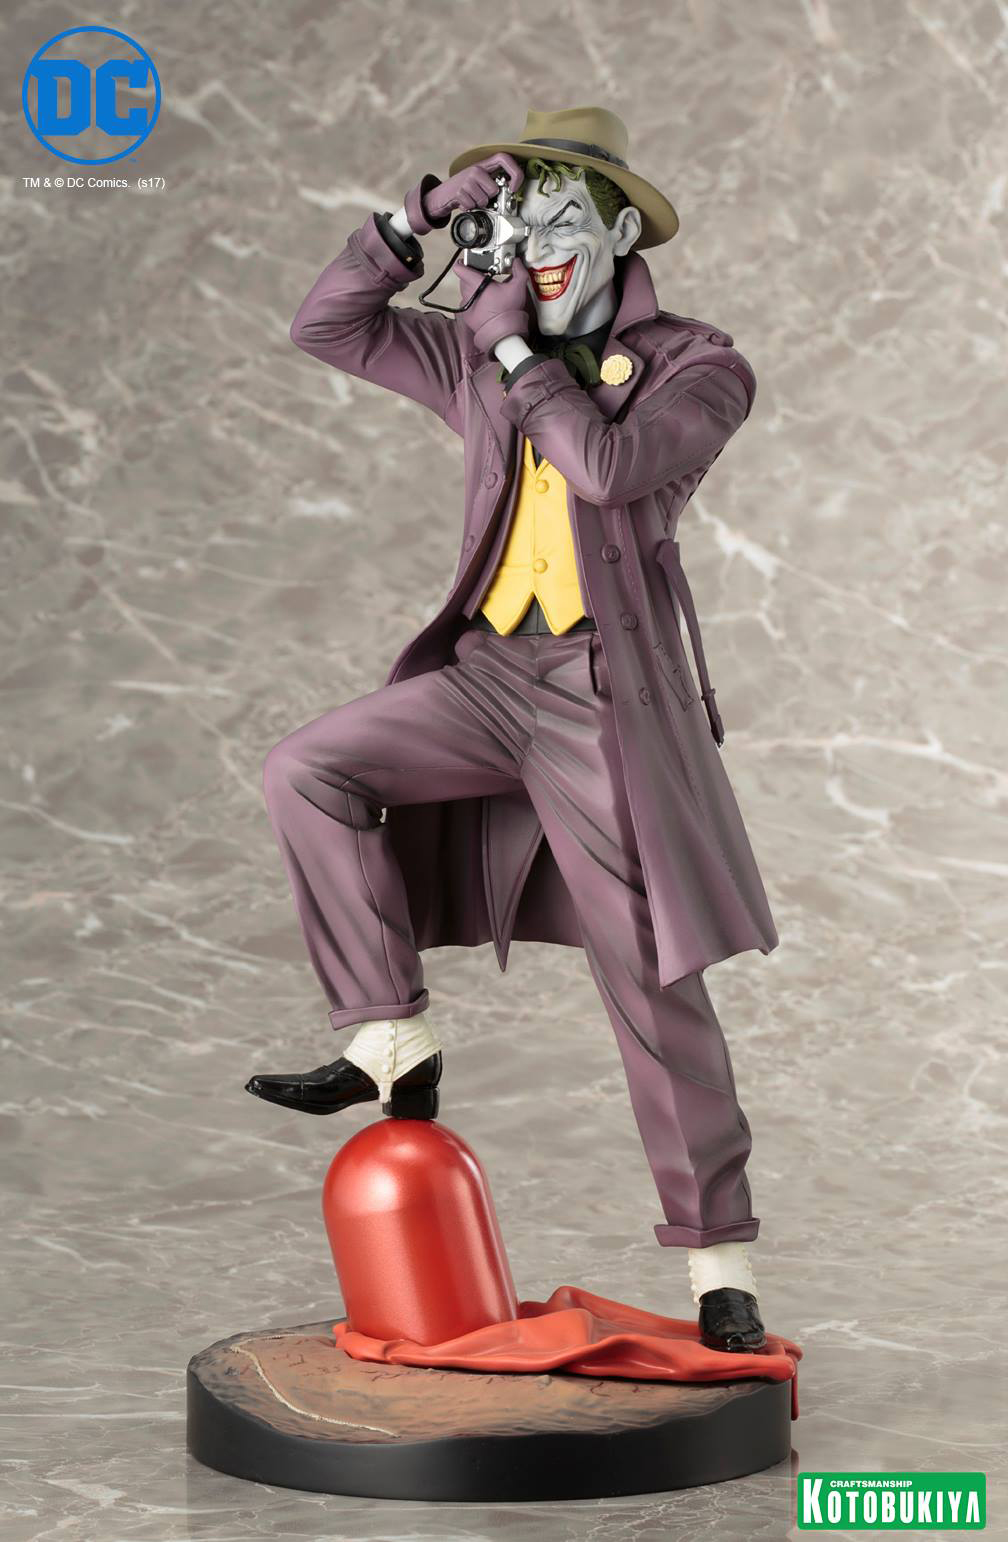 kotobukiya-joker-the-killing-joke-statue-1